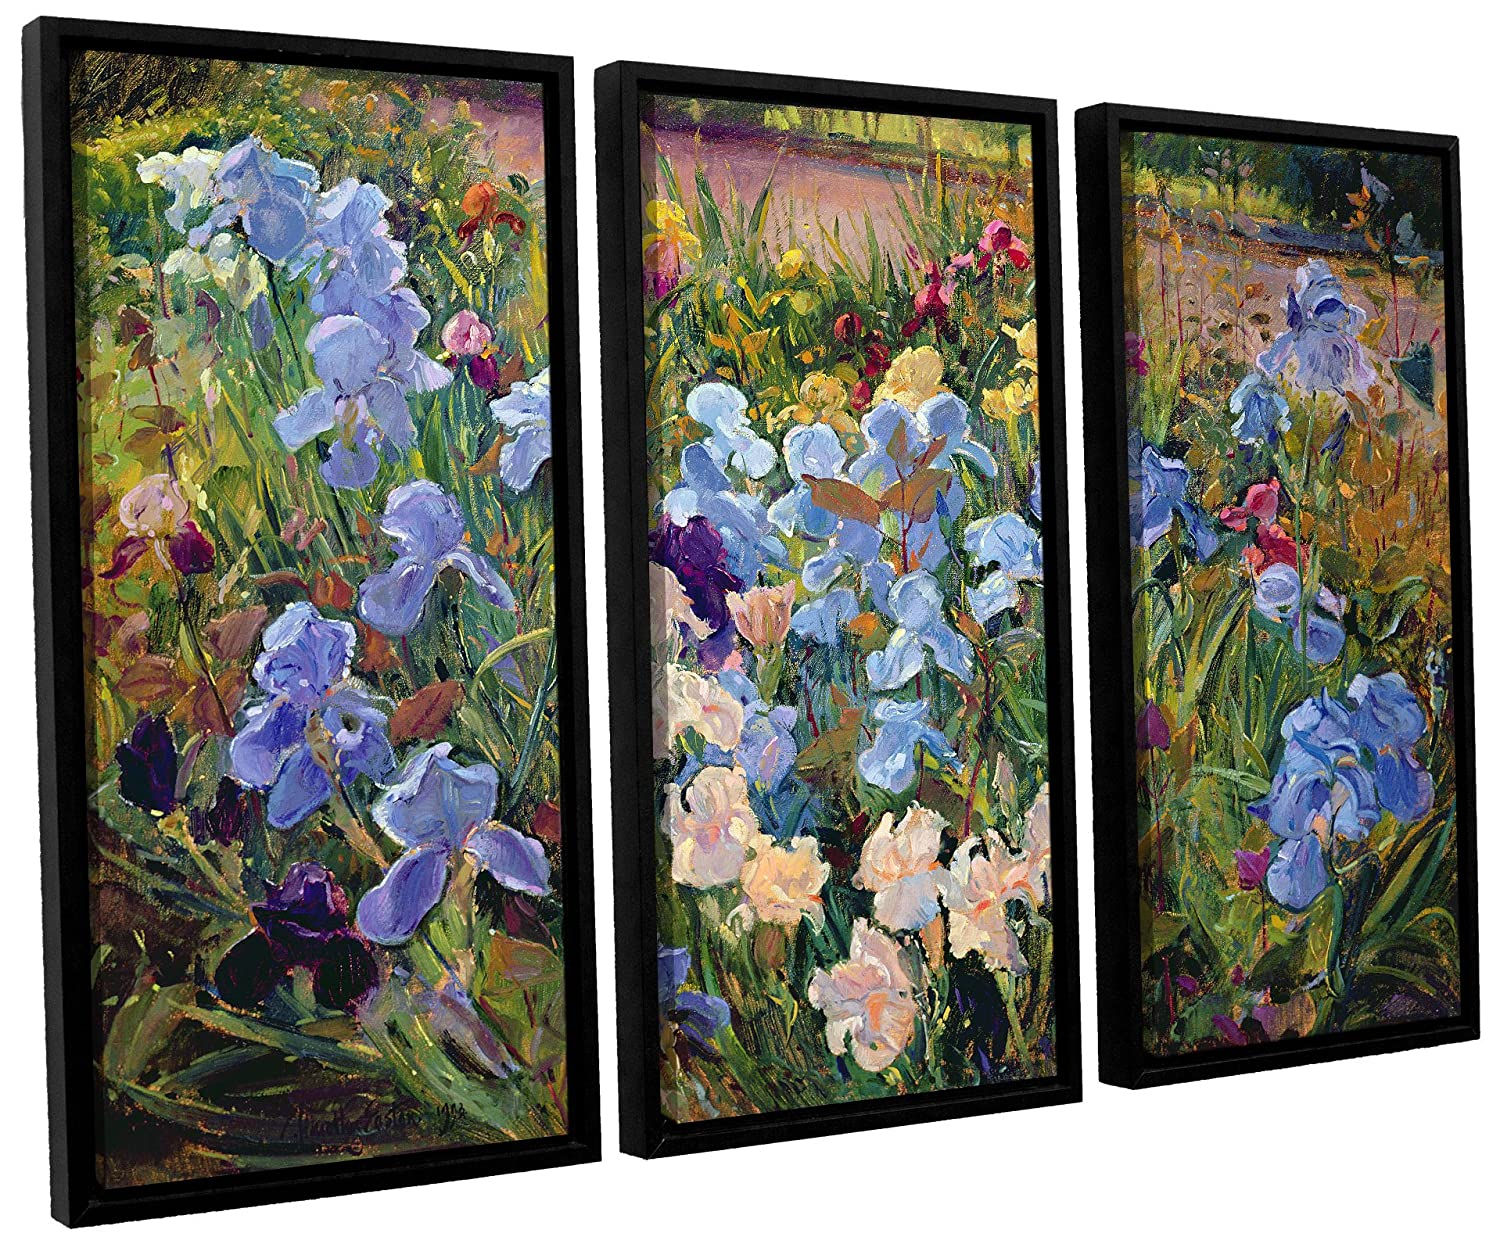 36X54 Timothy Easton The Iris Bed 1993 3 Piece Floater Framed Canvas Set